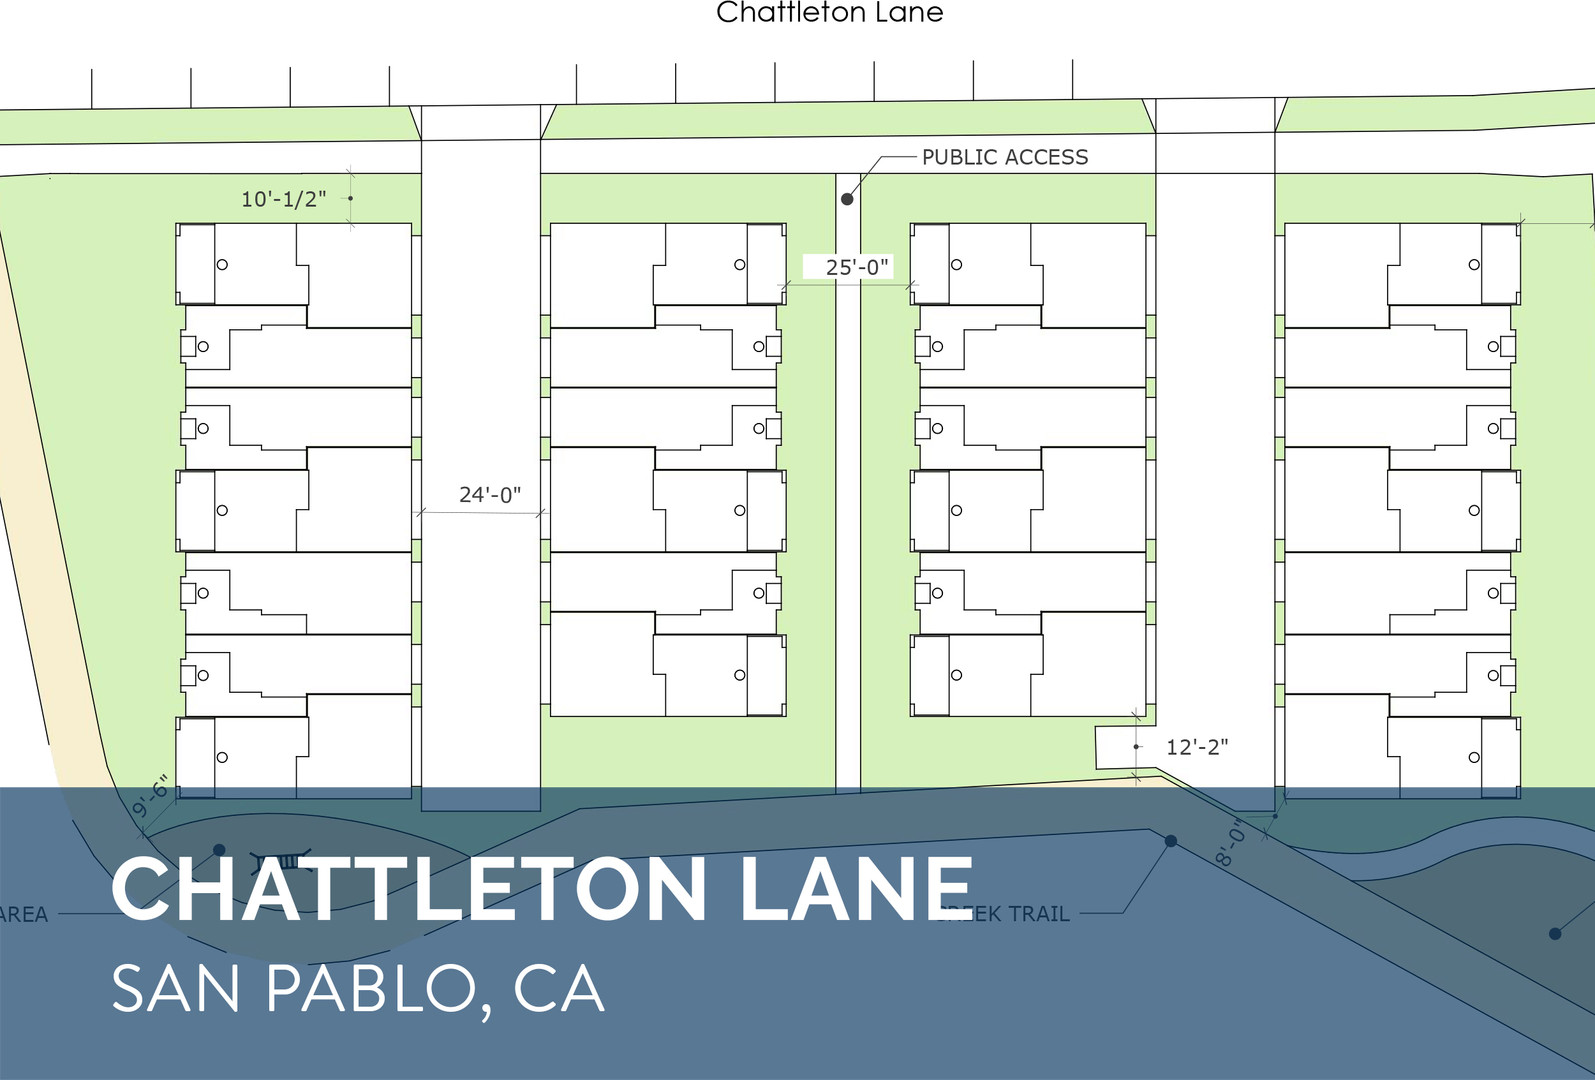 Planning_Slider Chattleton Lane.jpg